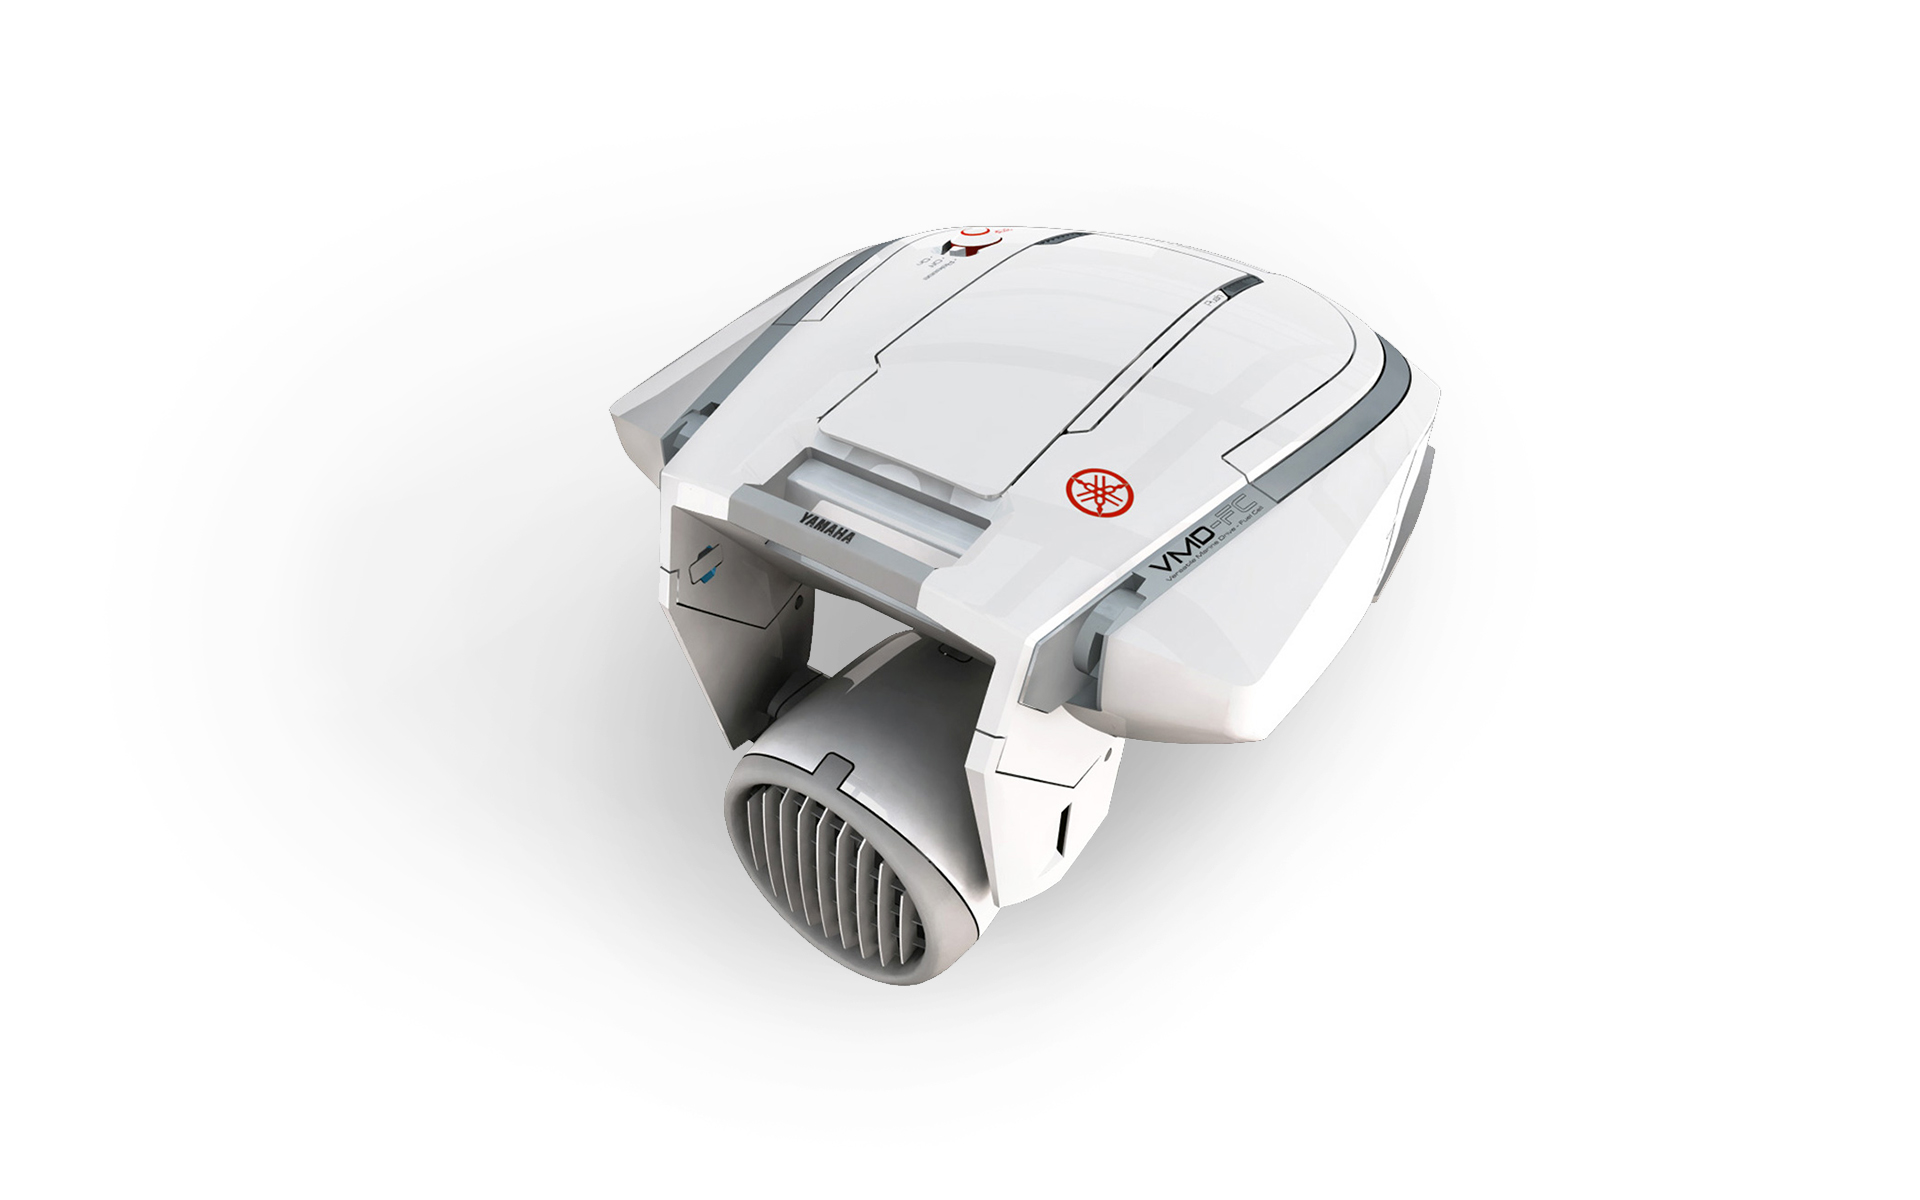 F-com fuel-cell outboard motor